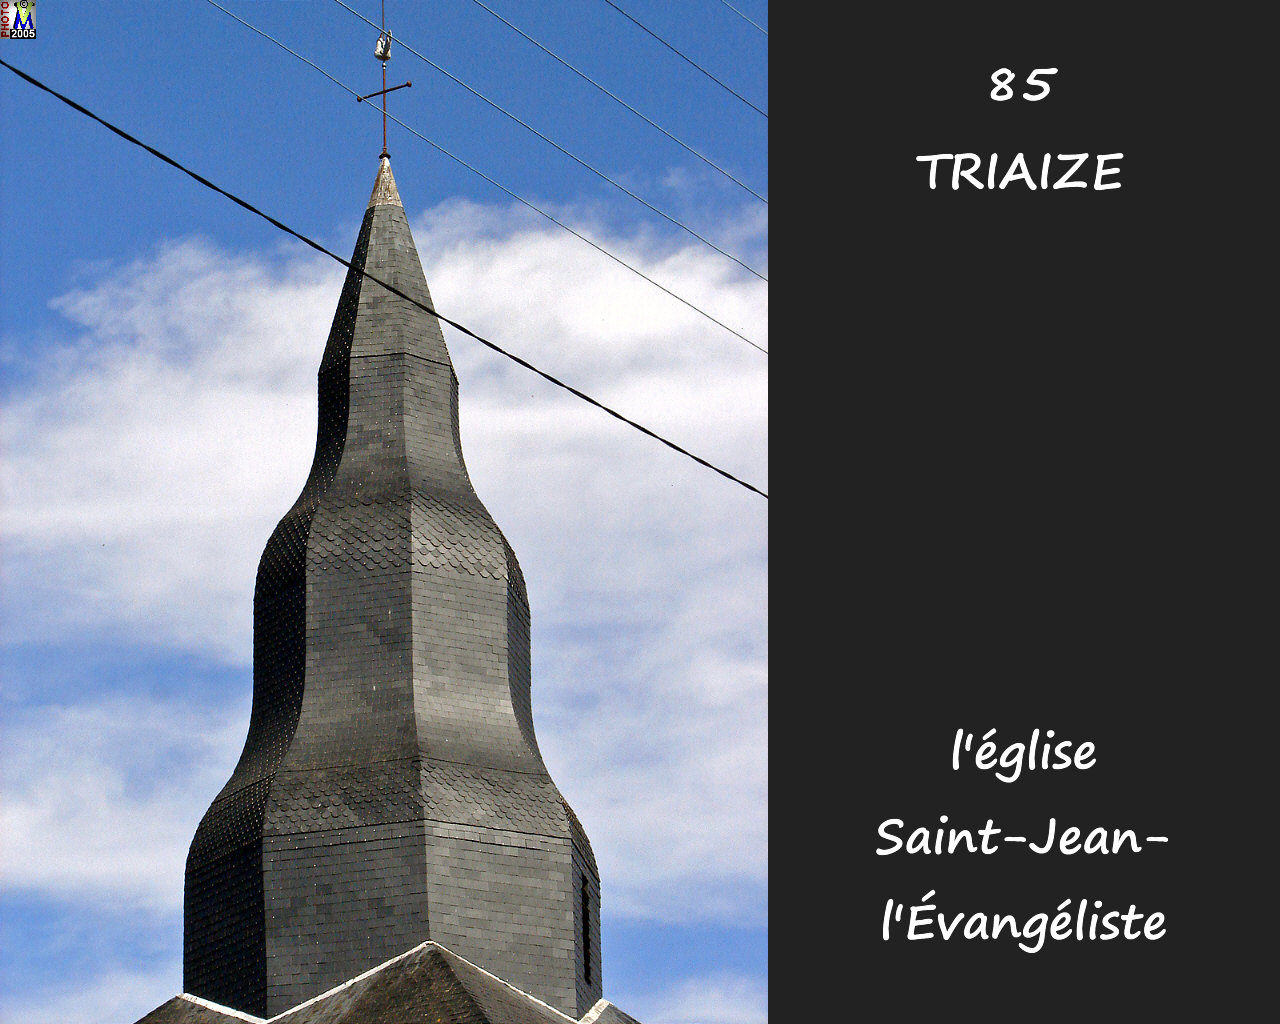 85TRIAIZE_eglise_106.jpg